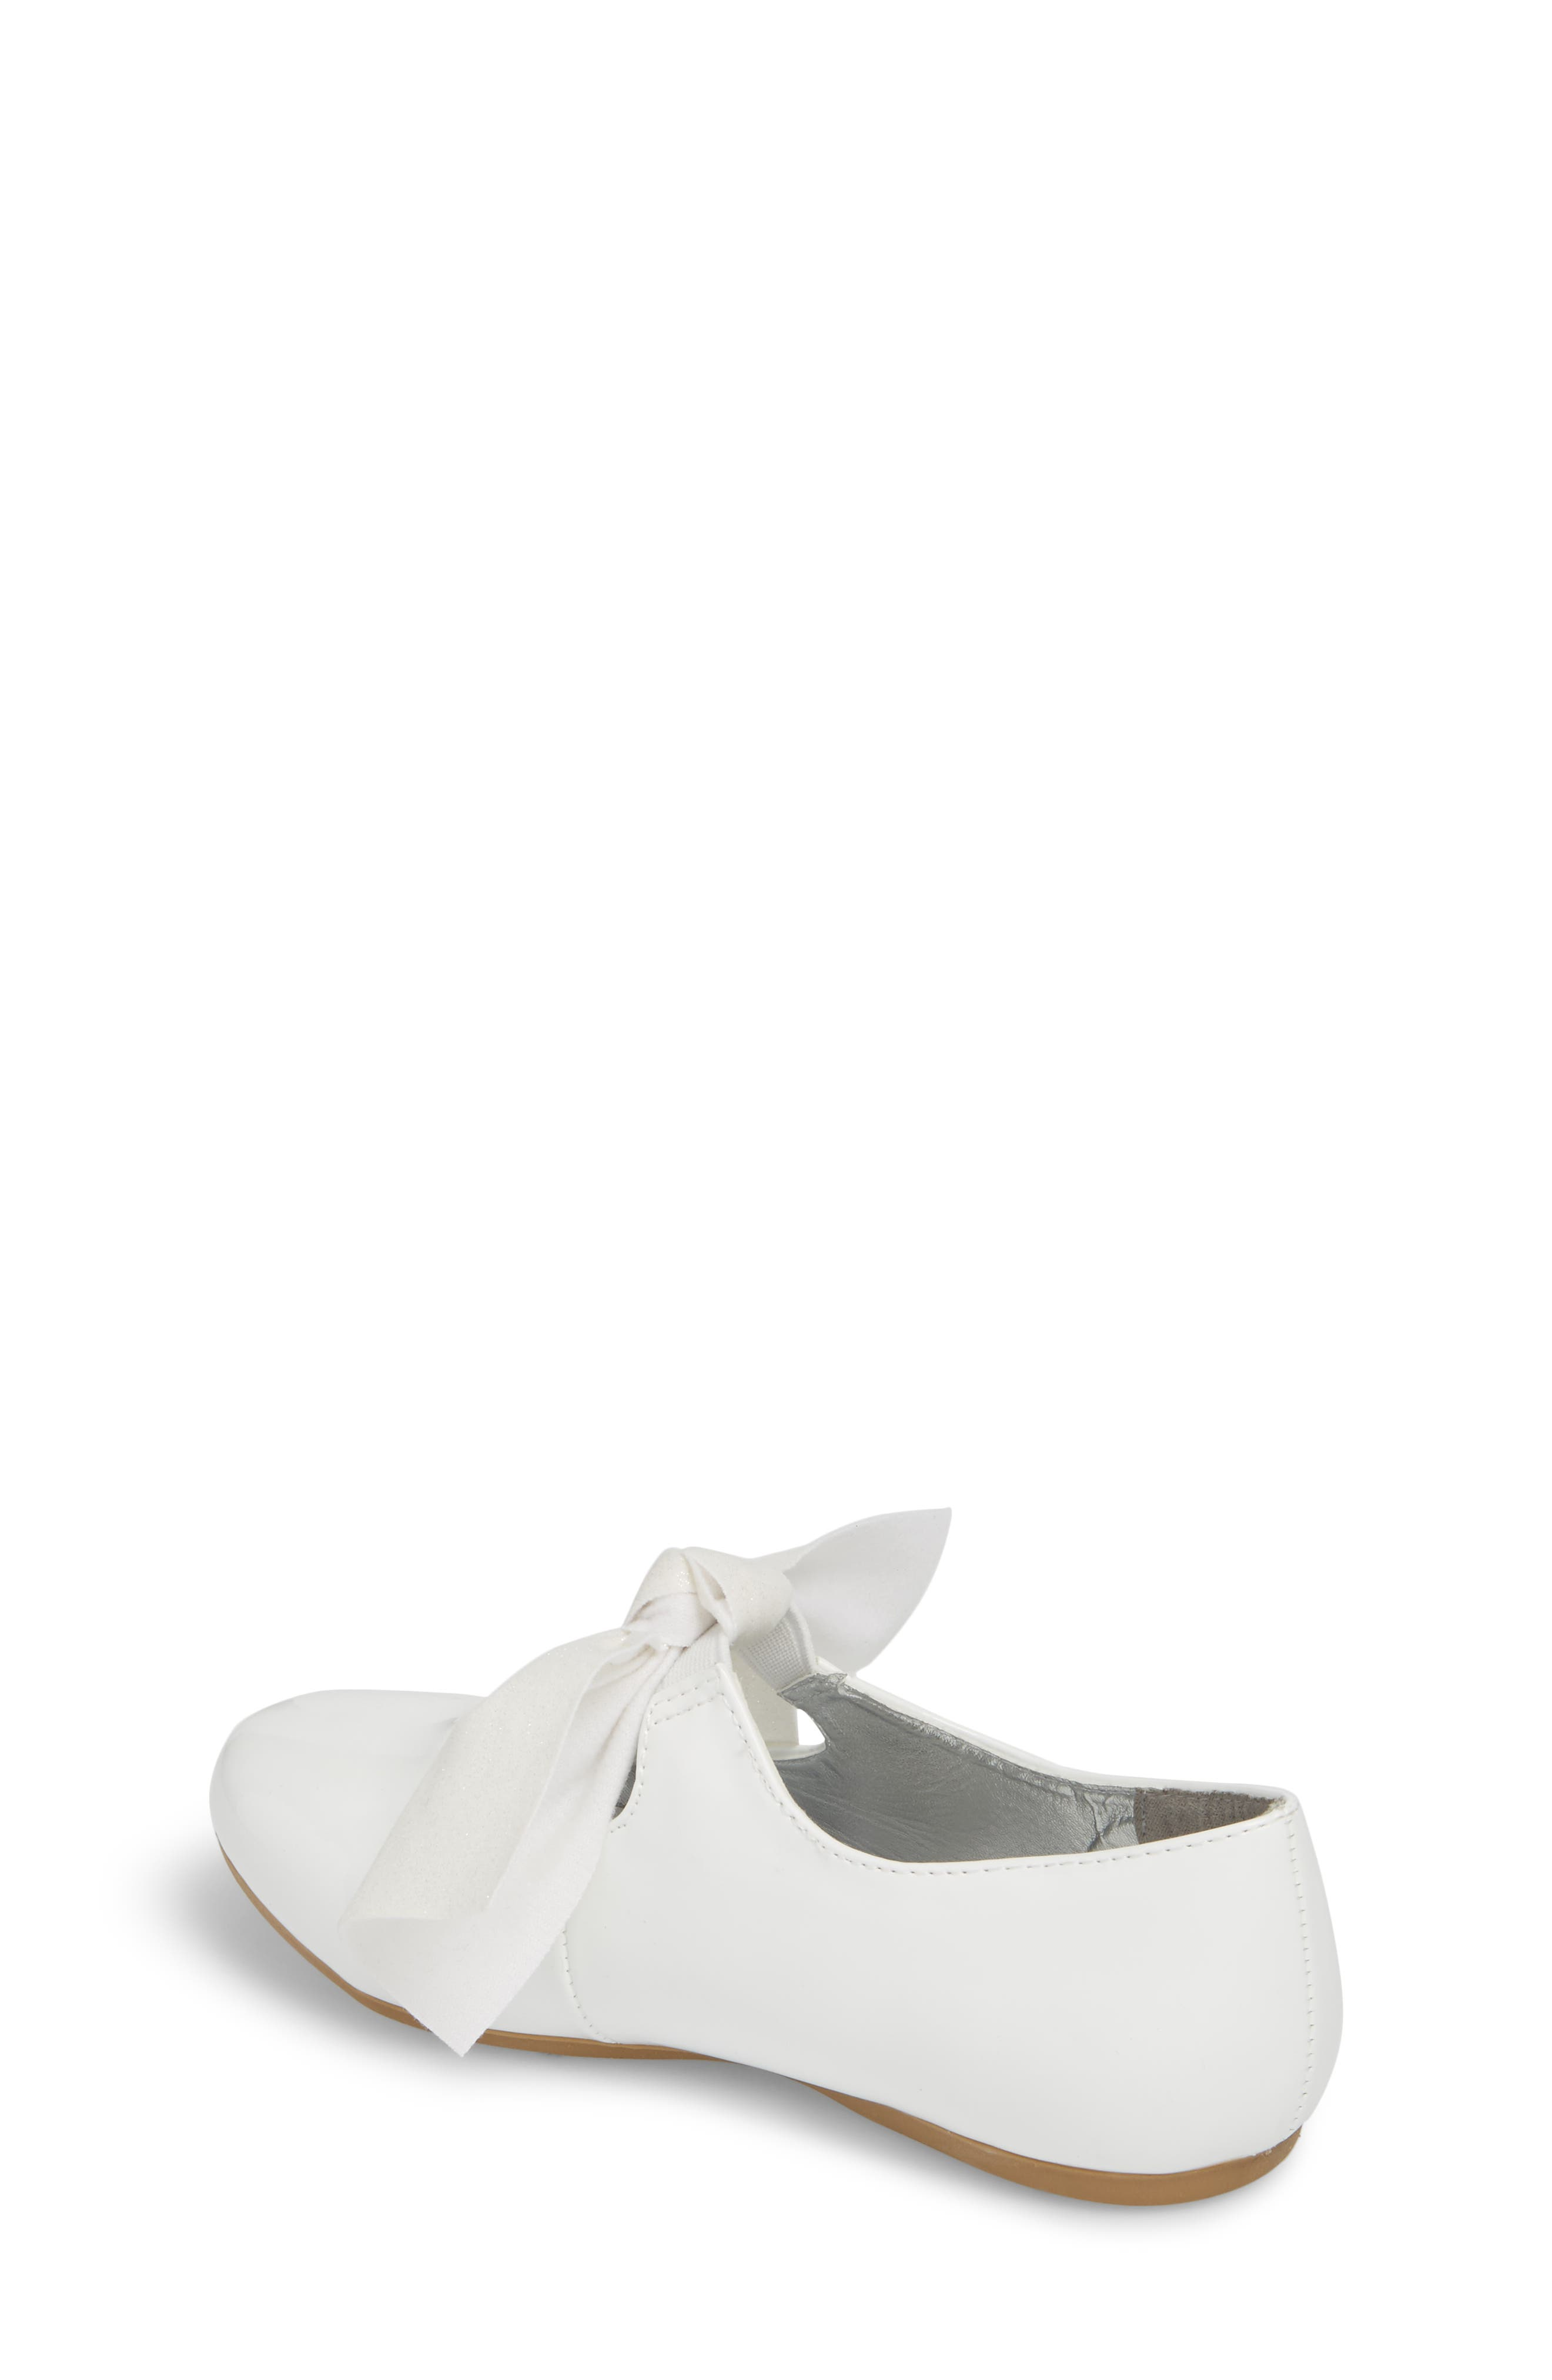 KENNETH COLE NEW YORK, Reaction Kenneth Cole Rose Bow Mary Jane Flat, Alternate thumbnail 2, color, WHITE PATENT